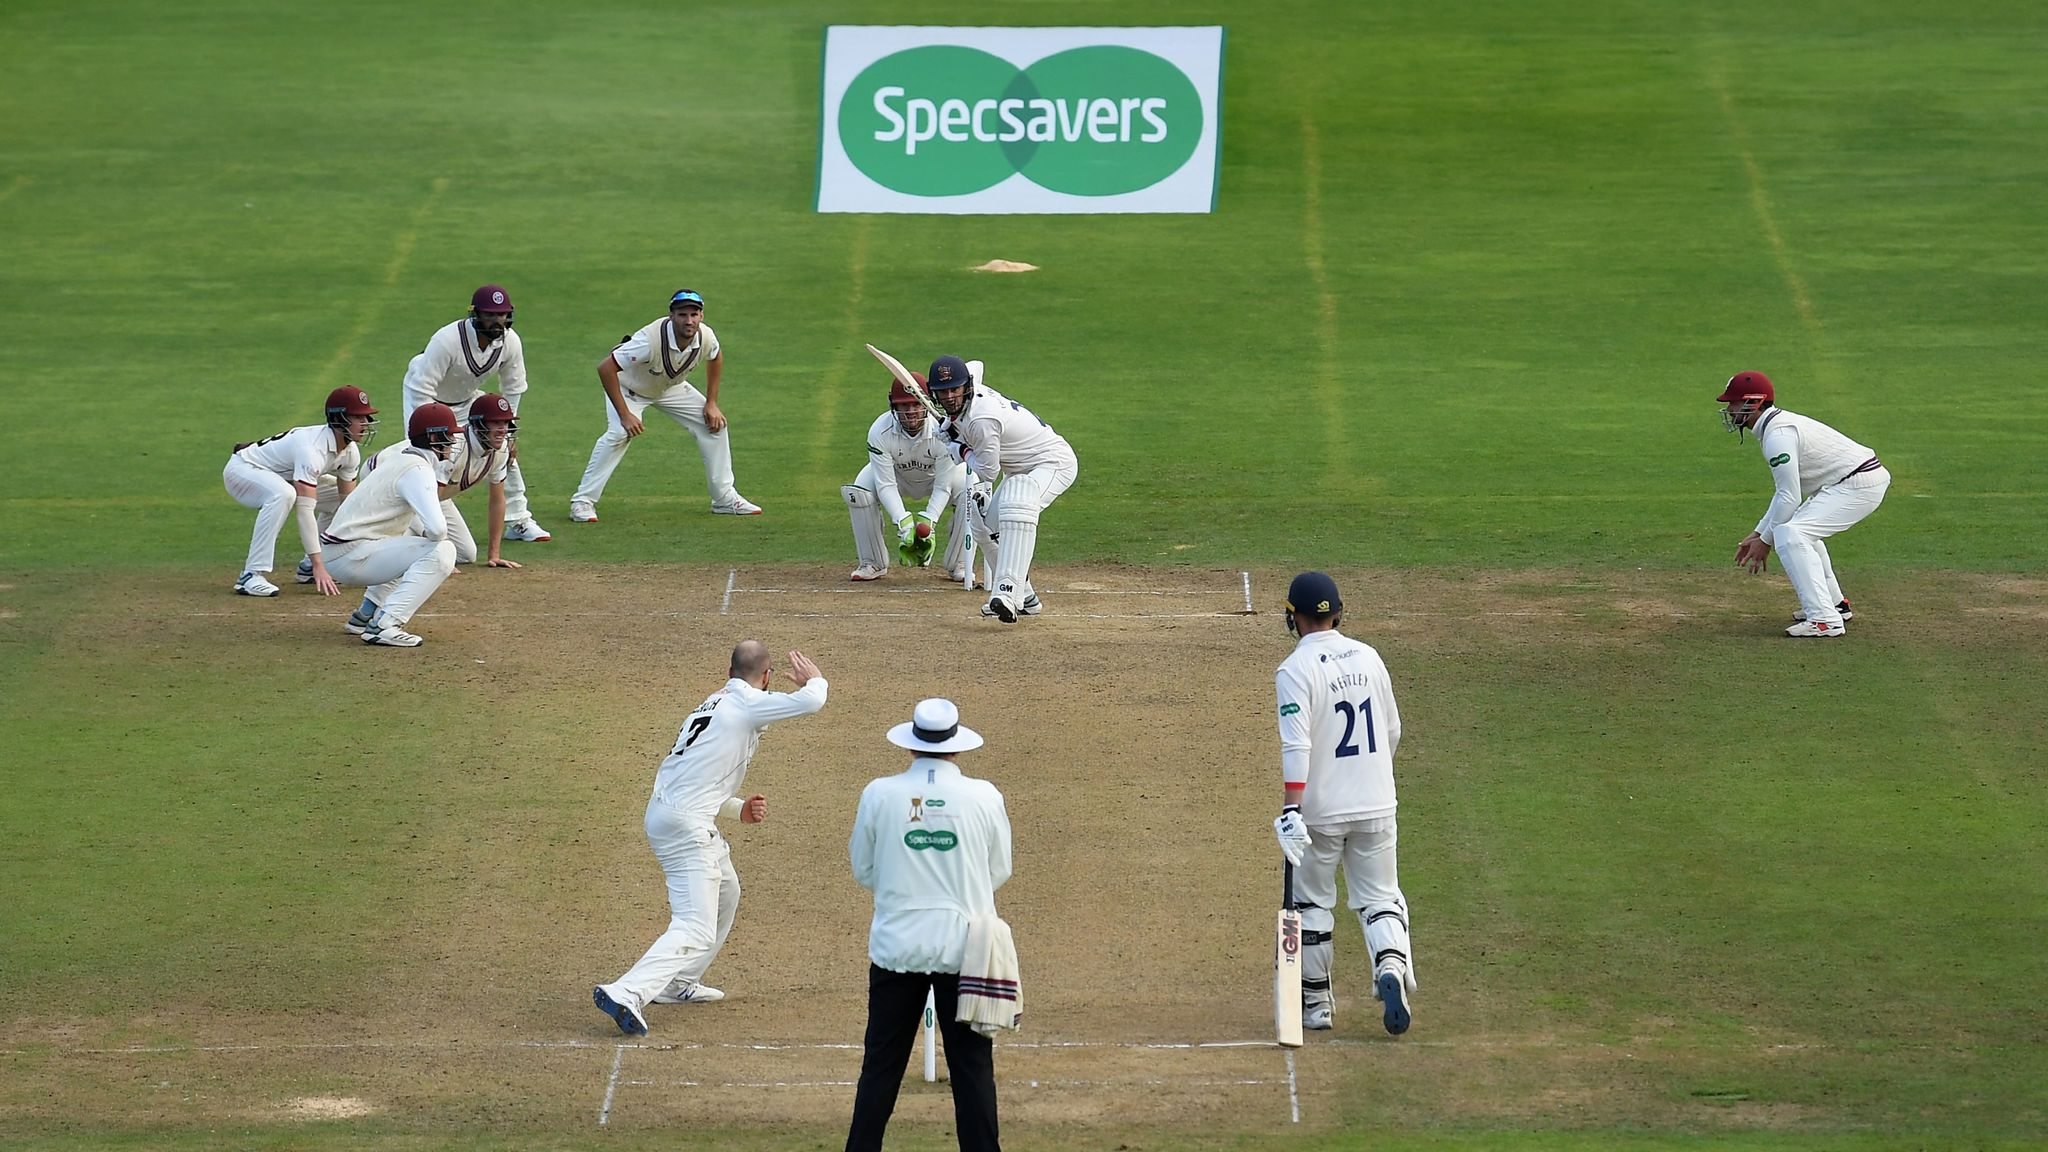 """Somerset will not appeal points deduction decision for """"poor pitch"""""""